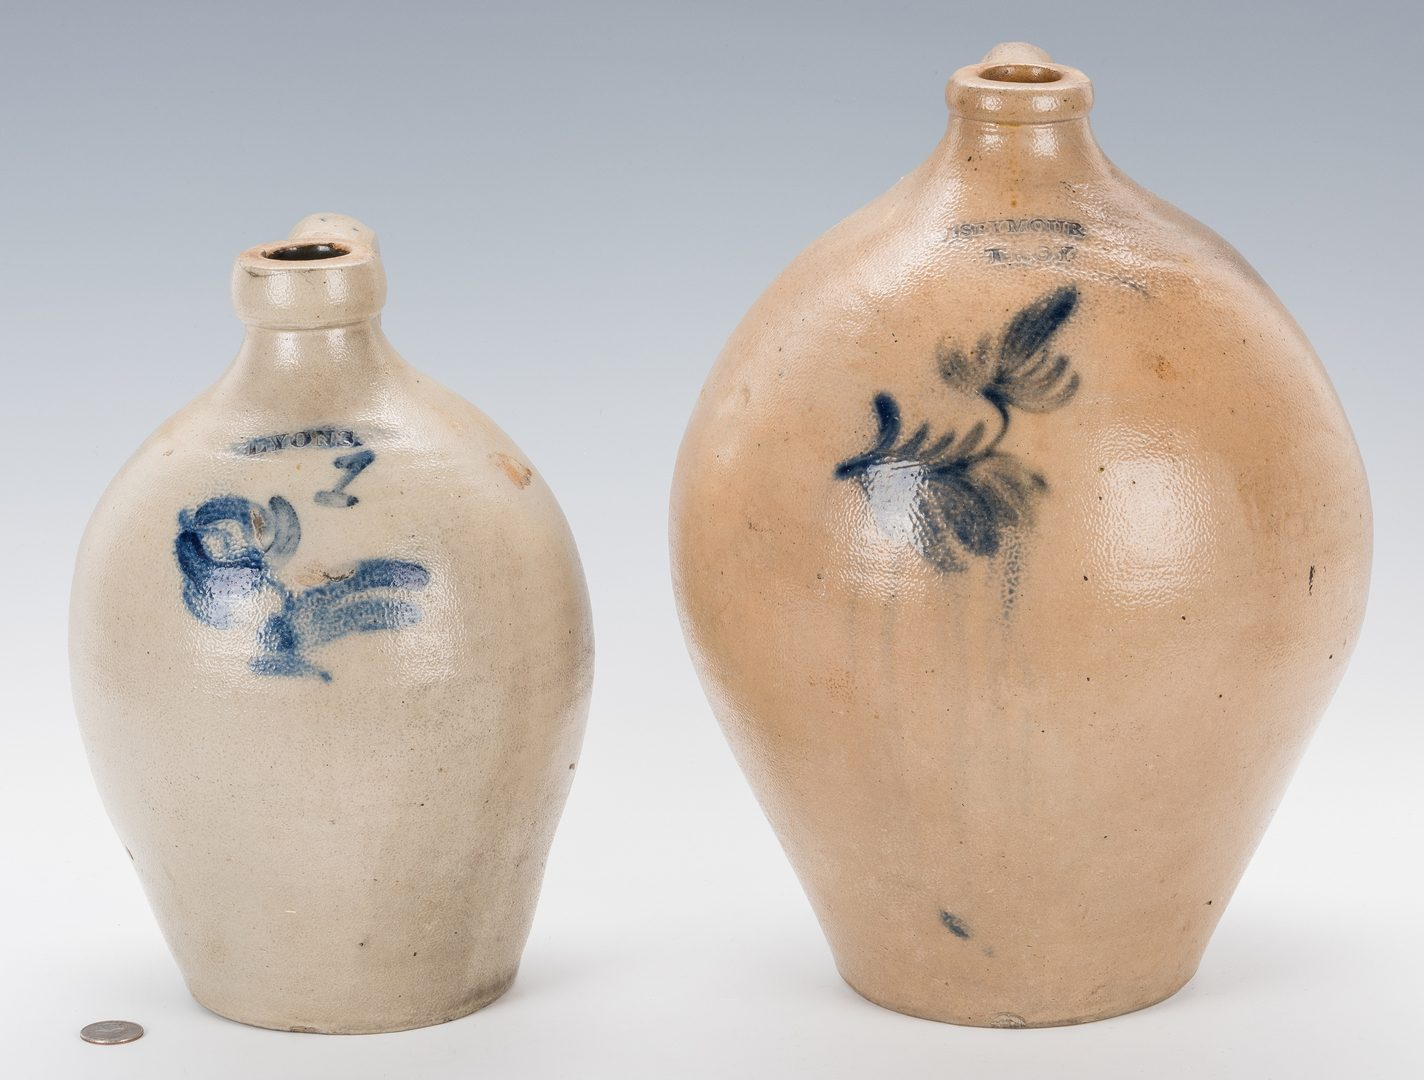 Lot 194: 2 New York Stoneware Ovoid Jugs w/ Cobalt Decoration